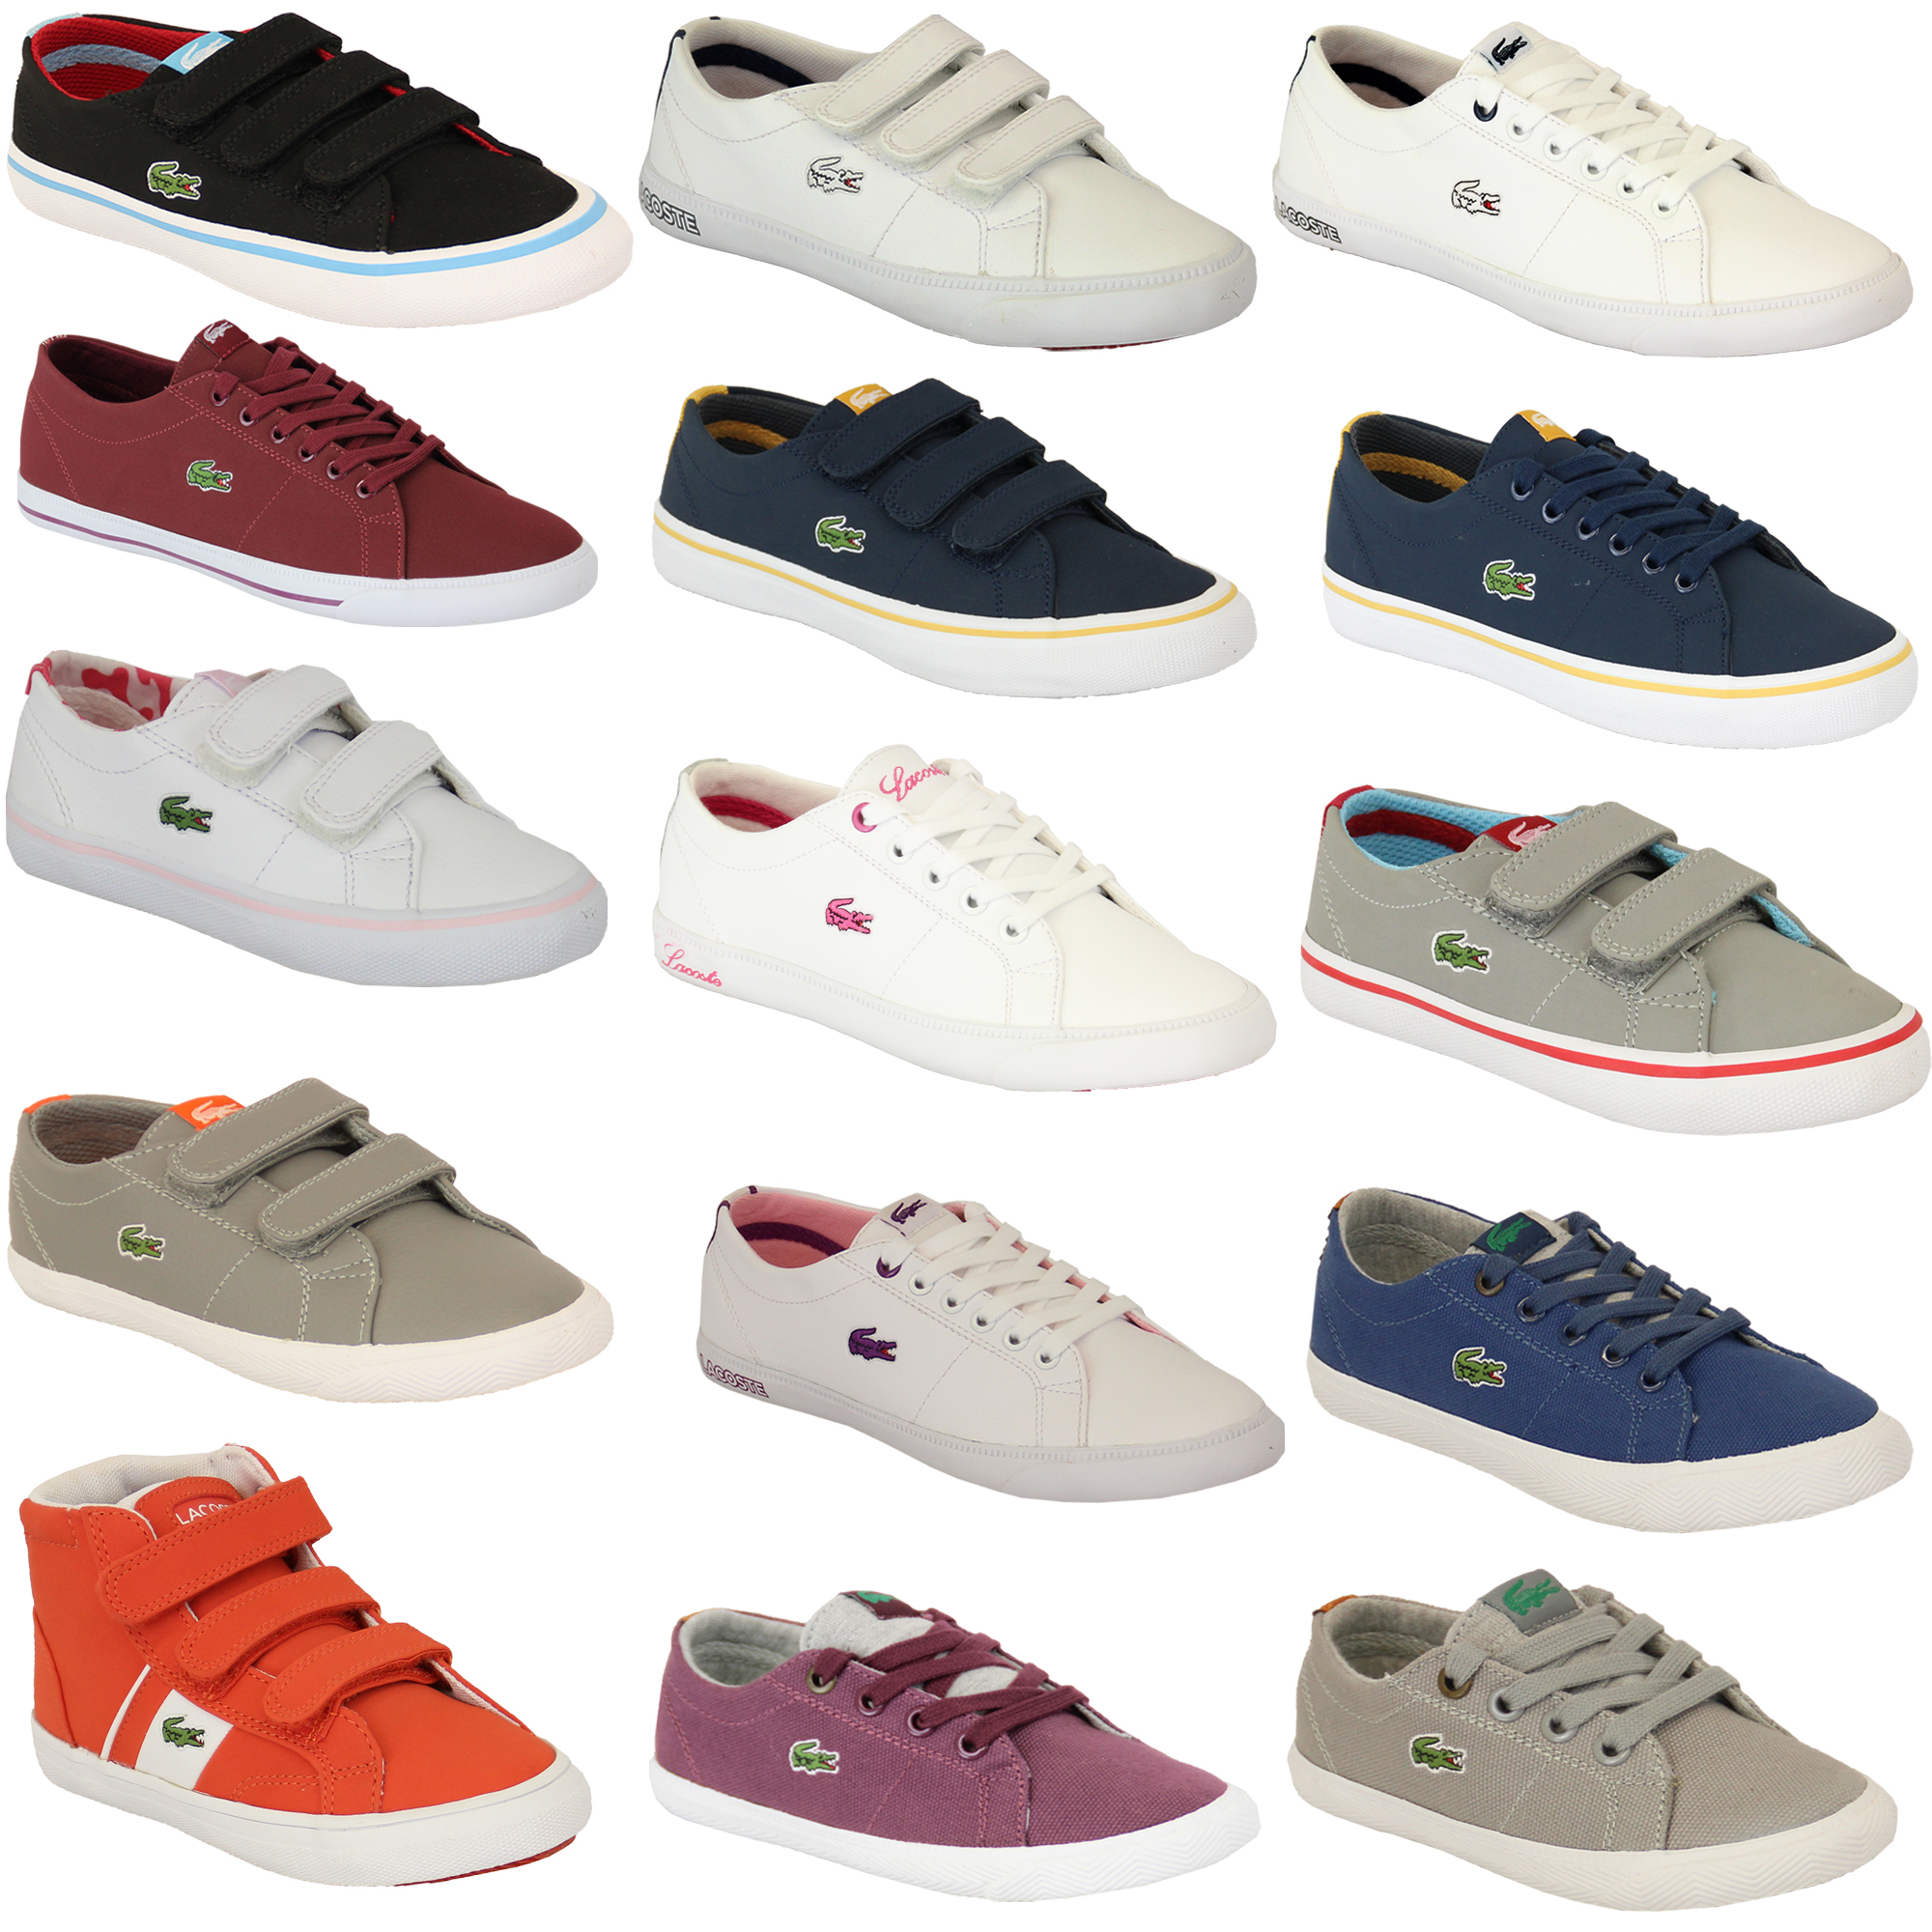 d829a8f427 Details about Boys Girls LACOSTE Trainers Kids Chunky Pumps Casual Shoes  Lace Up Youth Toddler